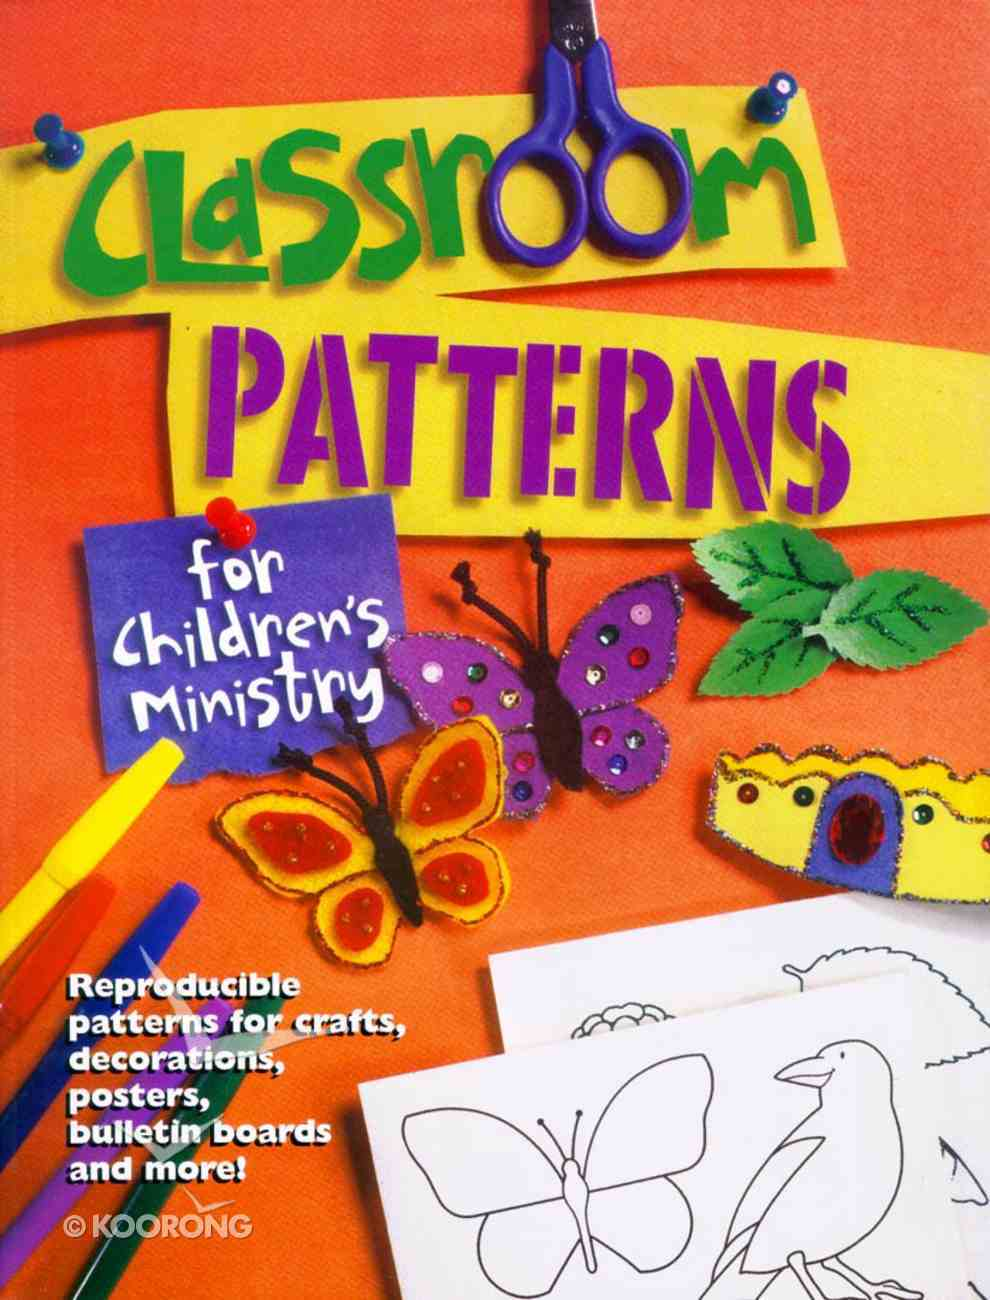 Classroom Pattern For Children's Ministry (Reproducible) Paperback